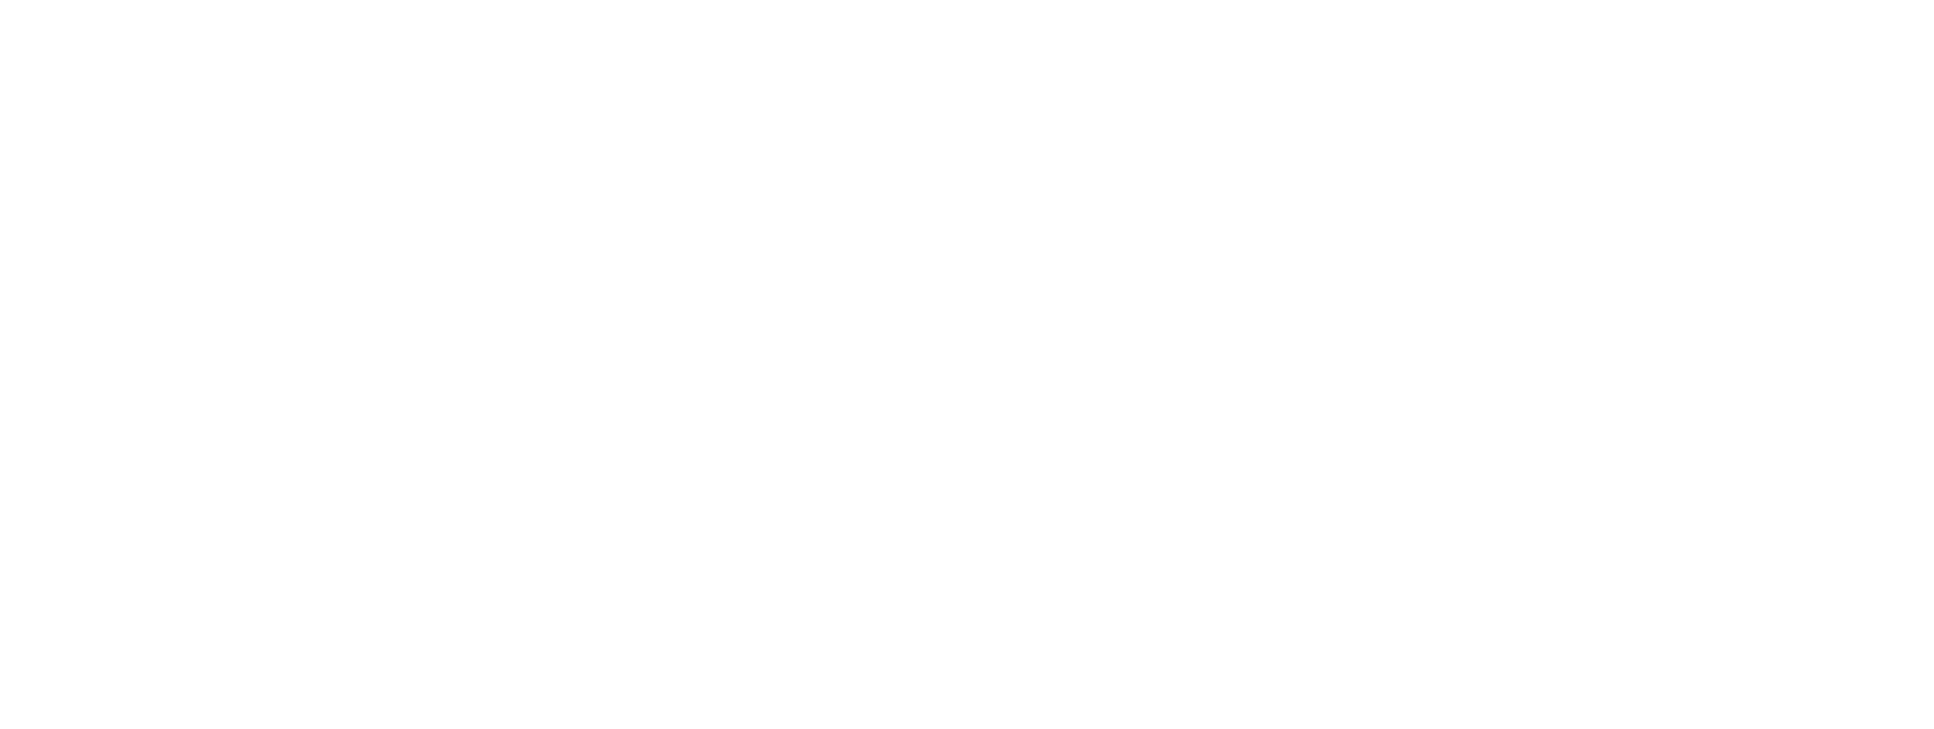 2019 ABLS COURSE & JOSEPH M STILL BURN SYMPOSIUM